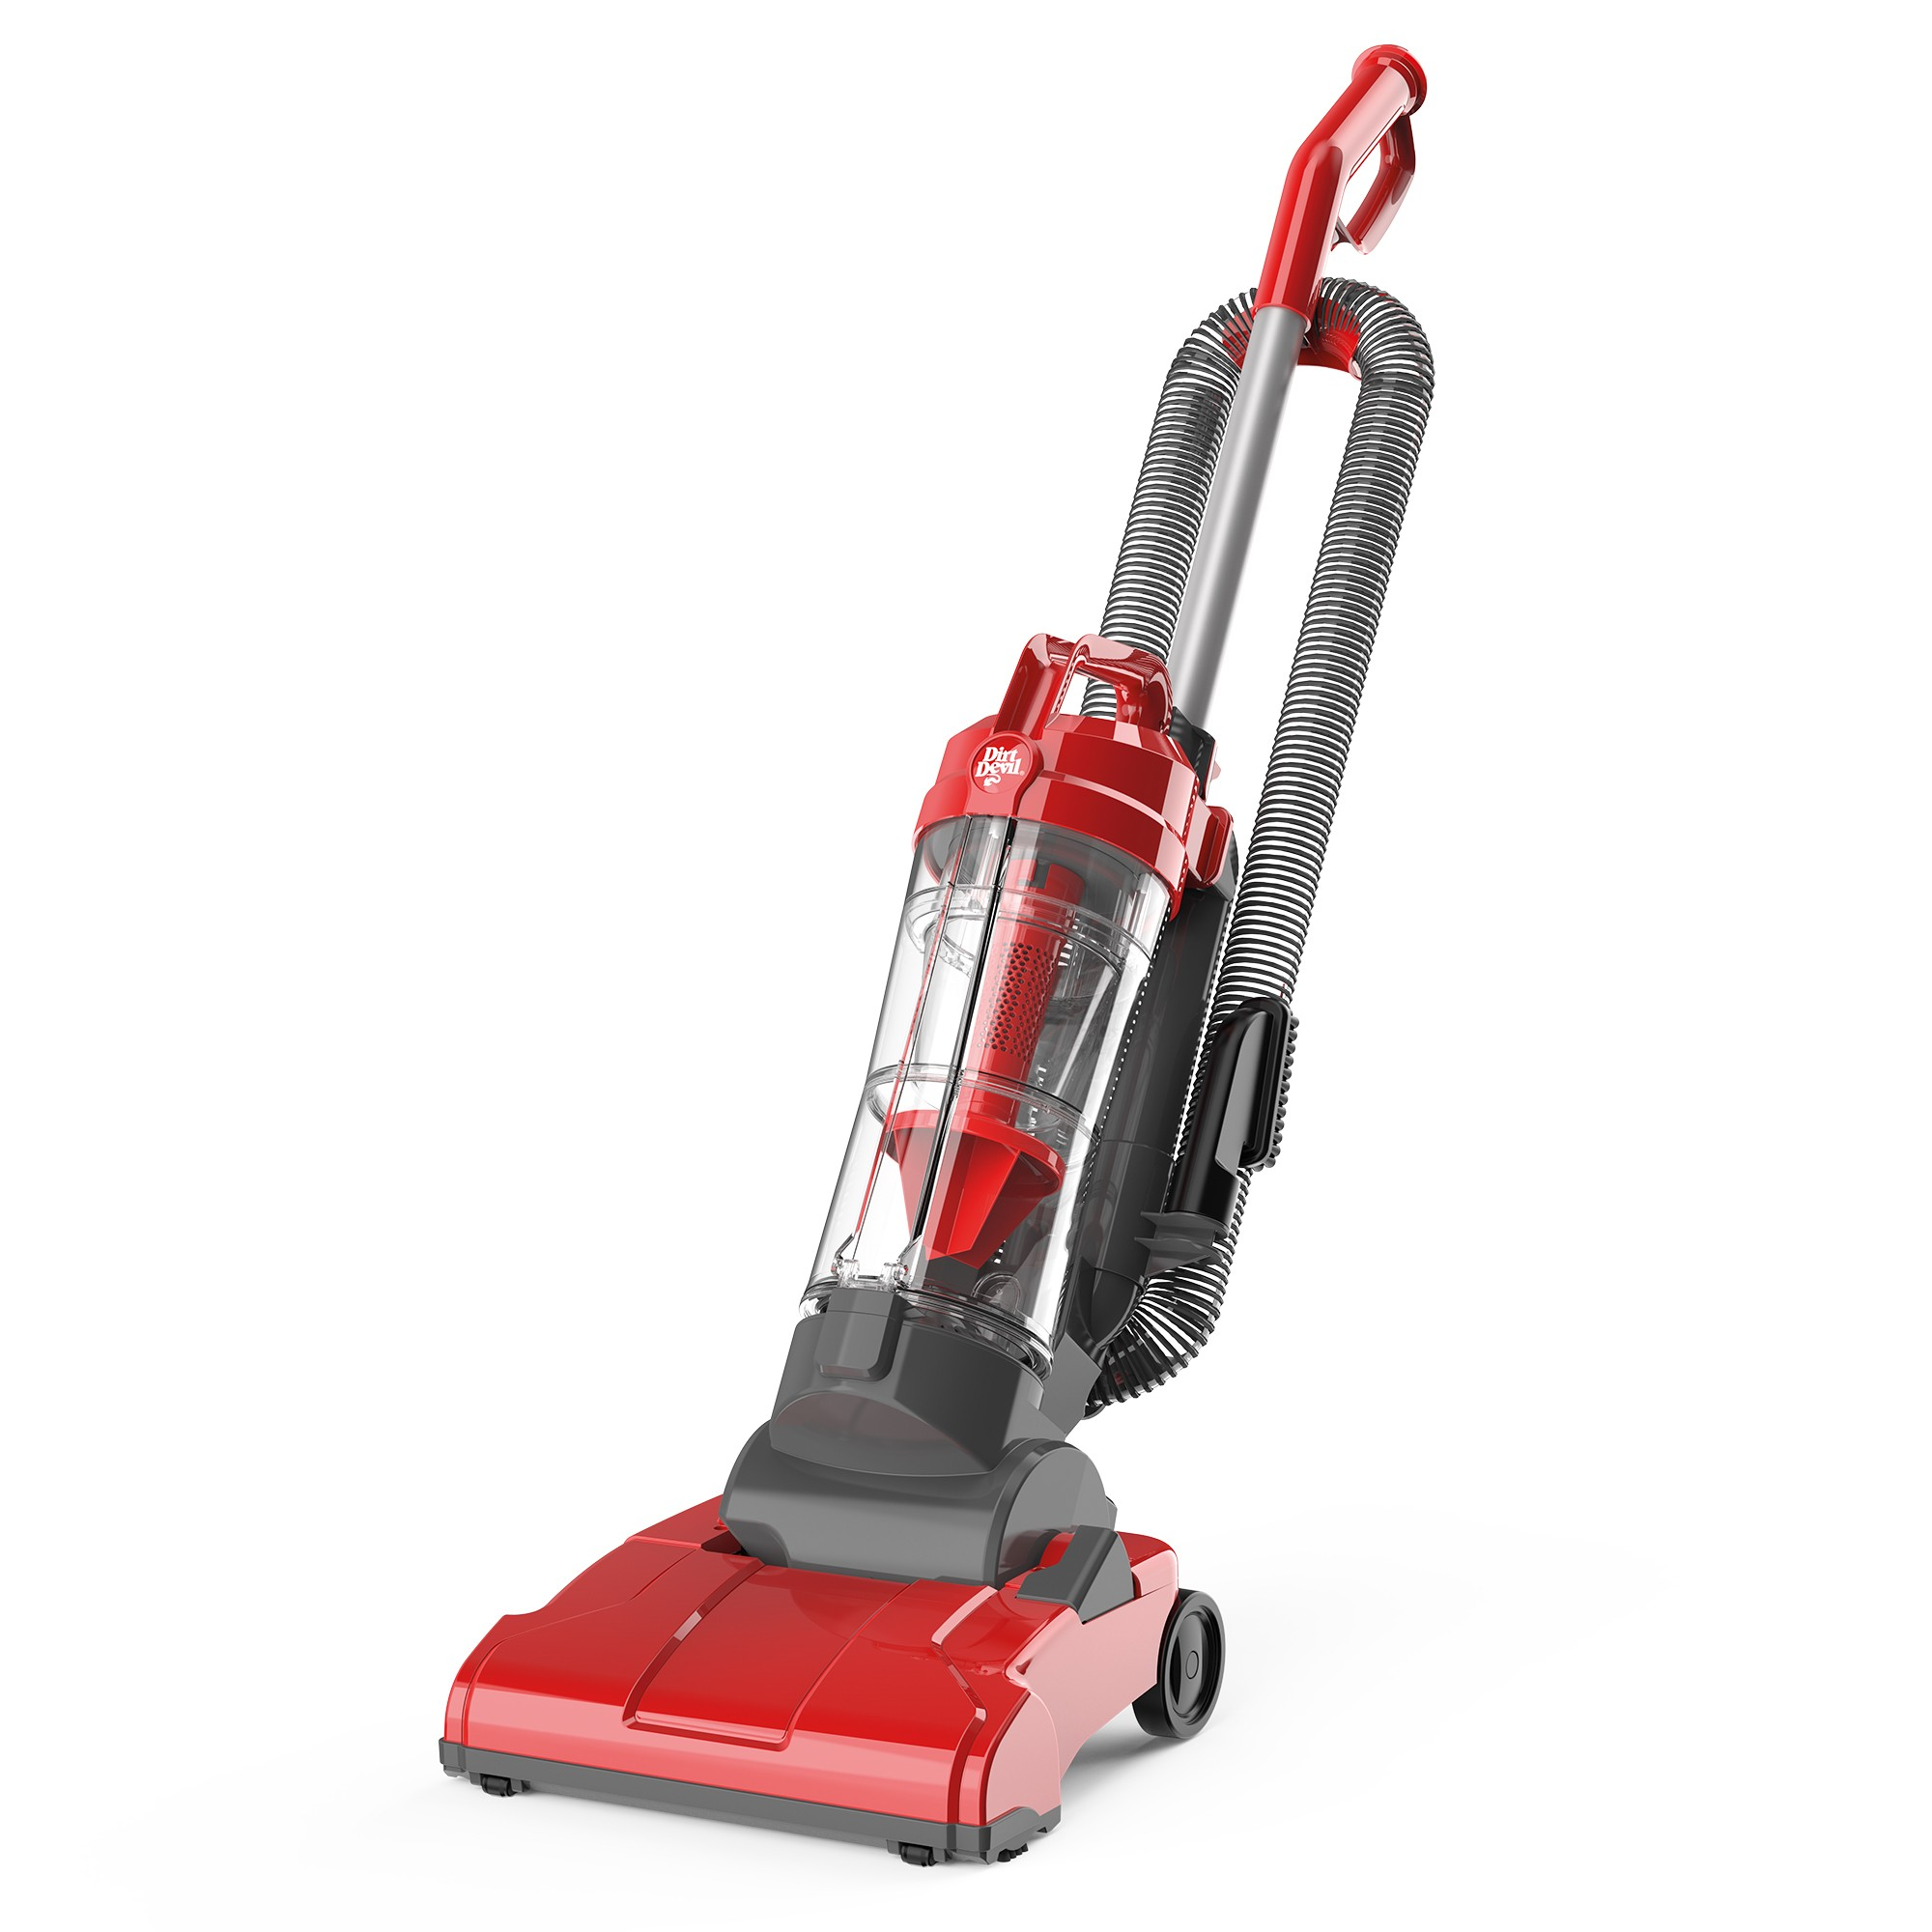 powerlite pet upright vacuum cleaner dirt devil uk. Black Bedroom Furniture Sets. Home Design Ideas